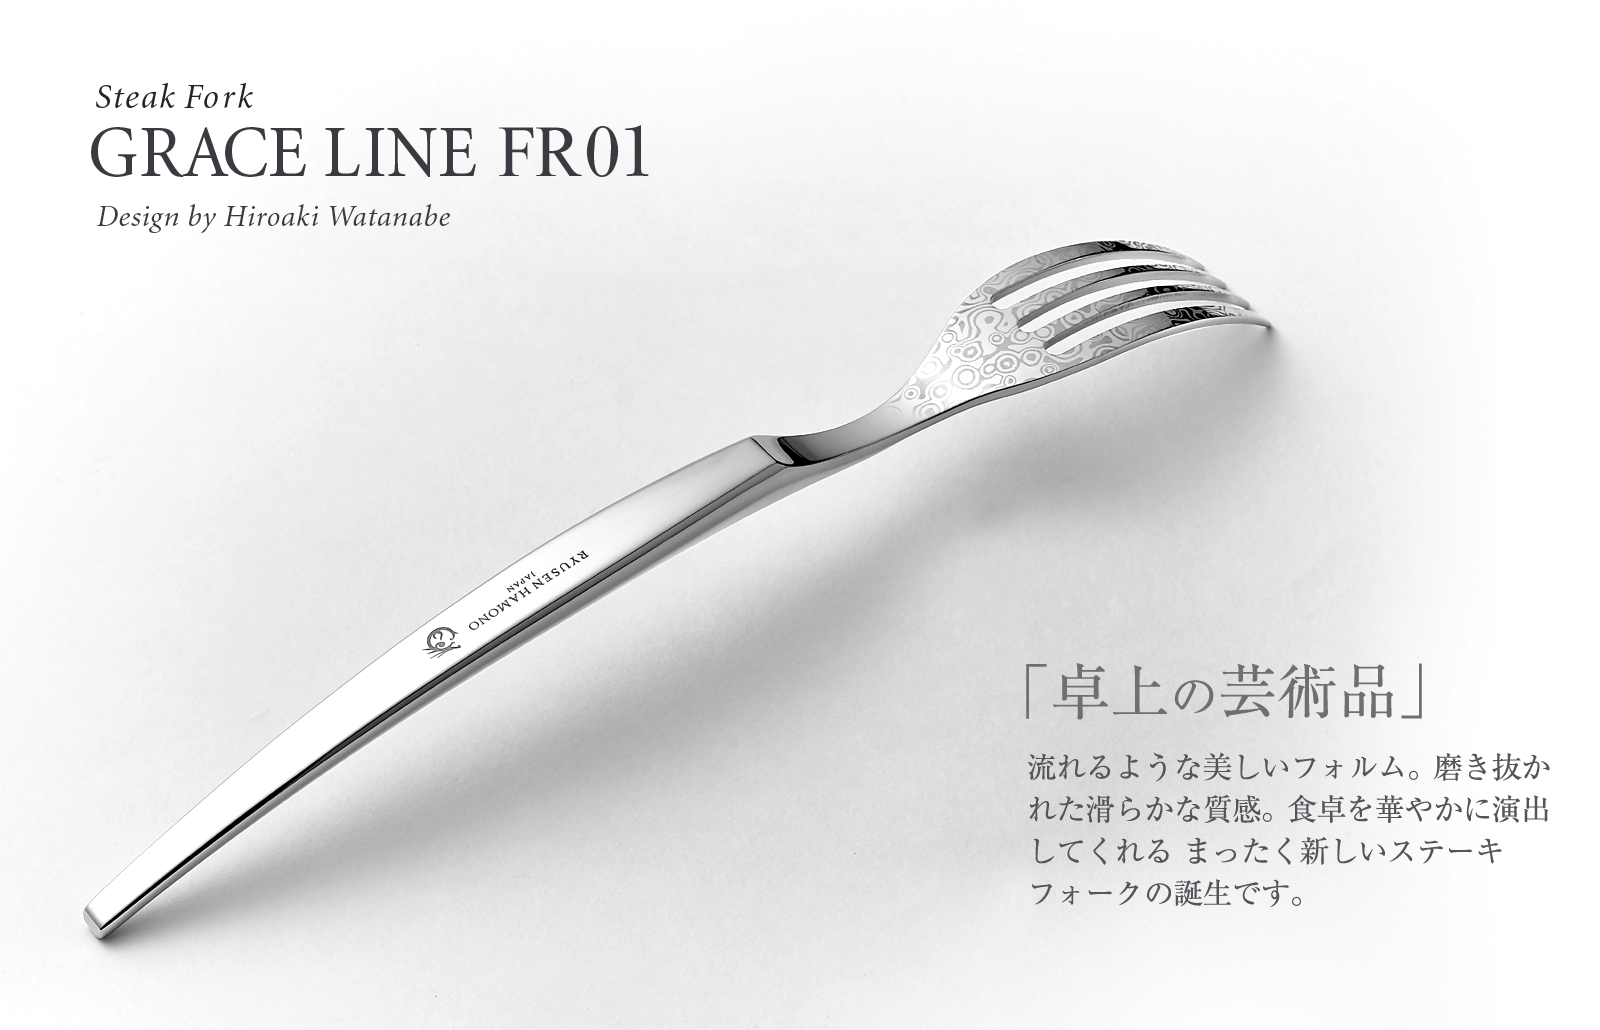 Steak Fork GRAGE LINE FR01